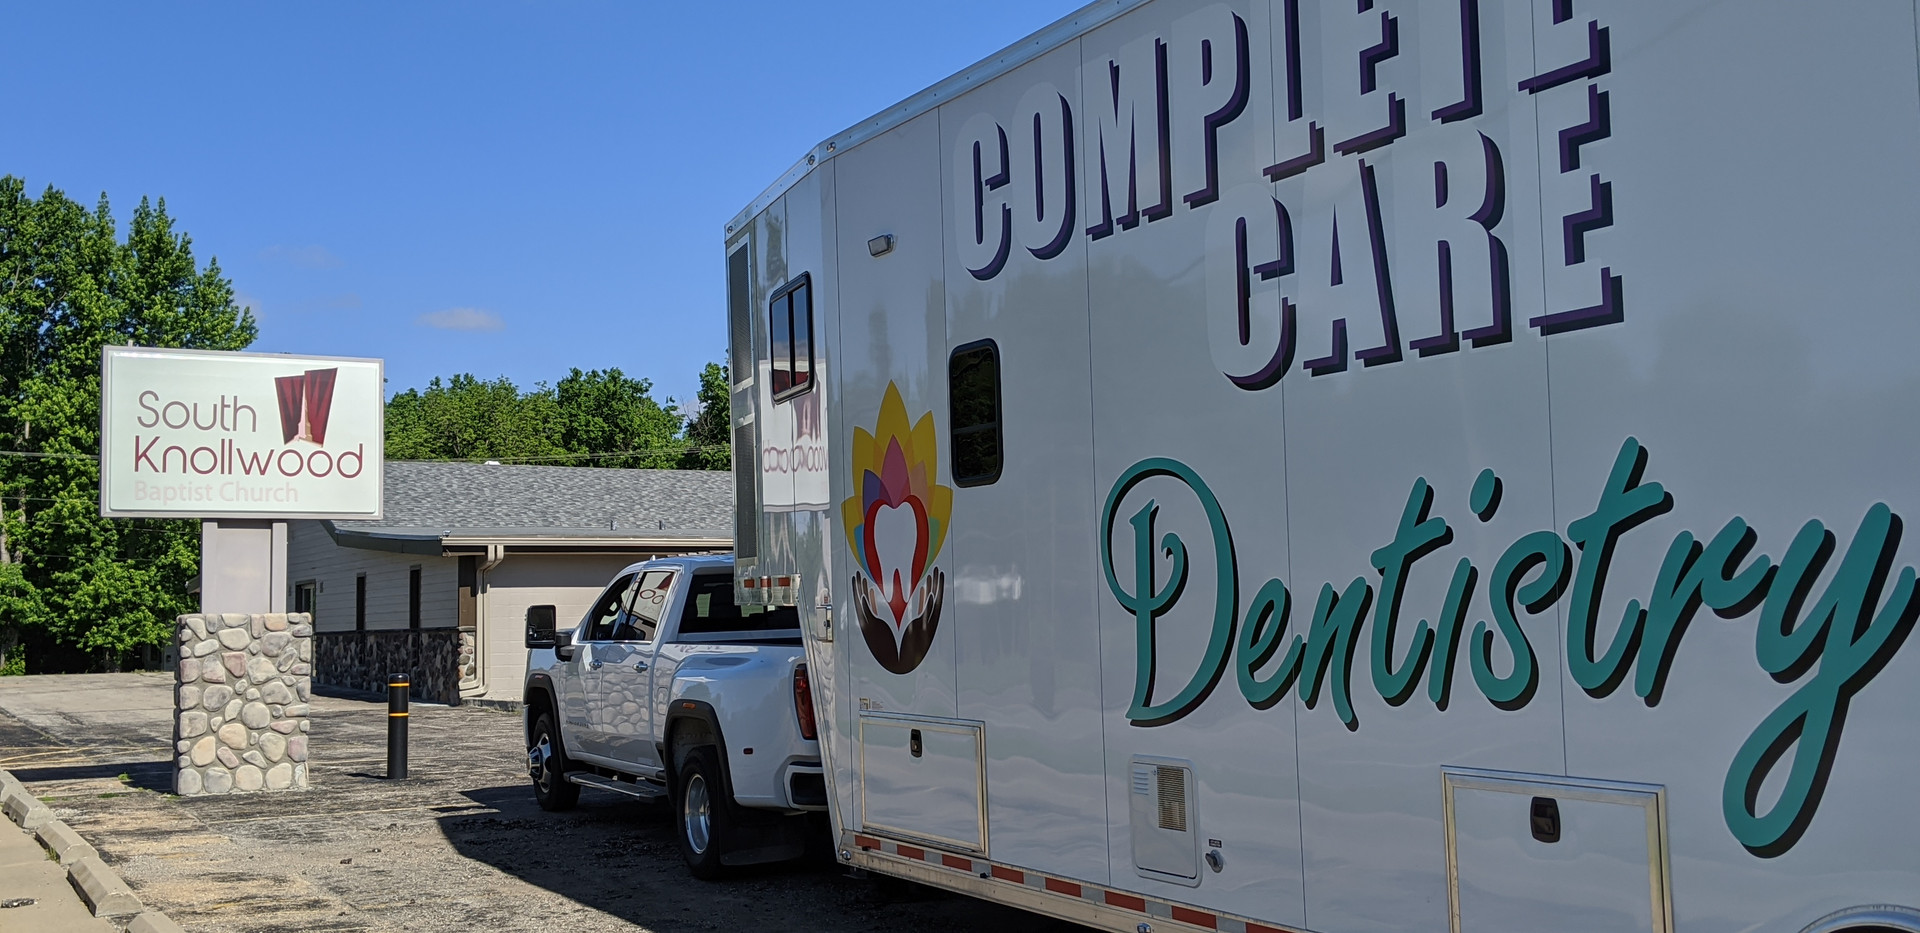 The Dental Clinic in South Knollwood, Topeka